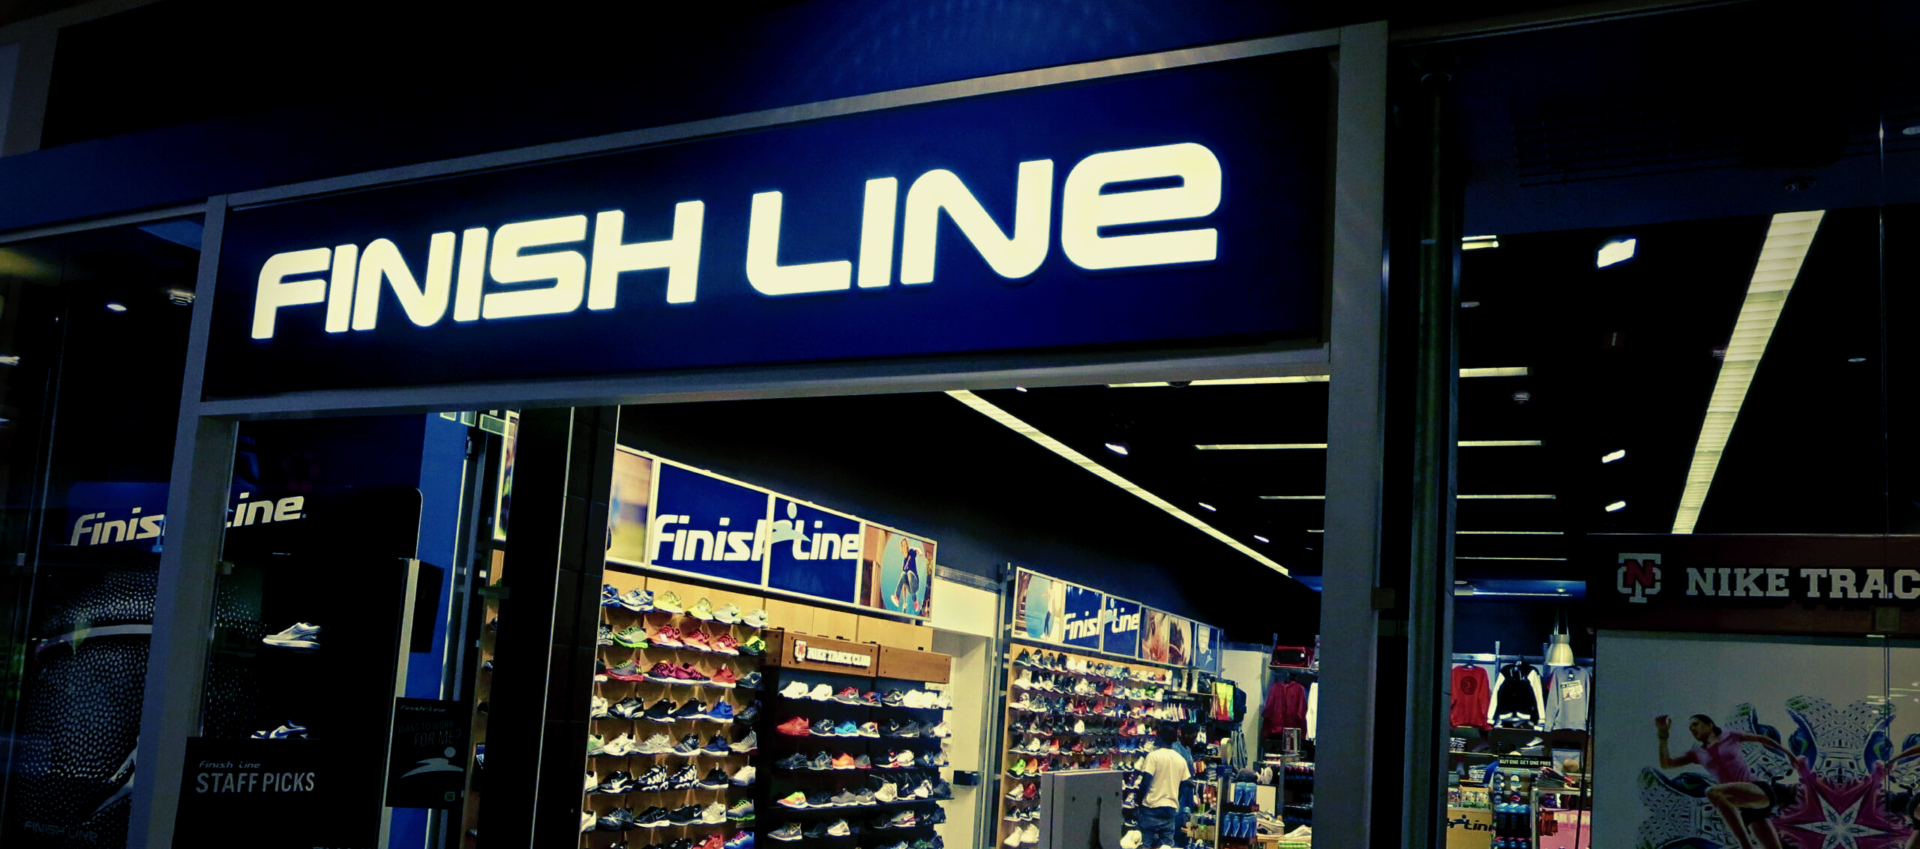 Why Finish Line?